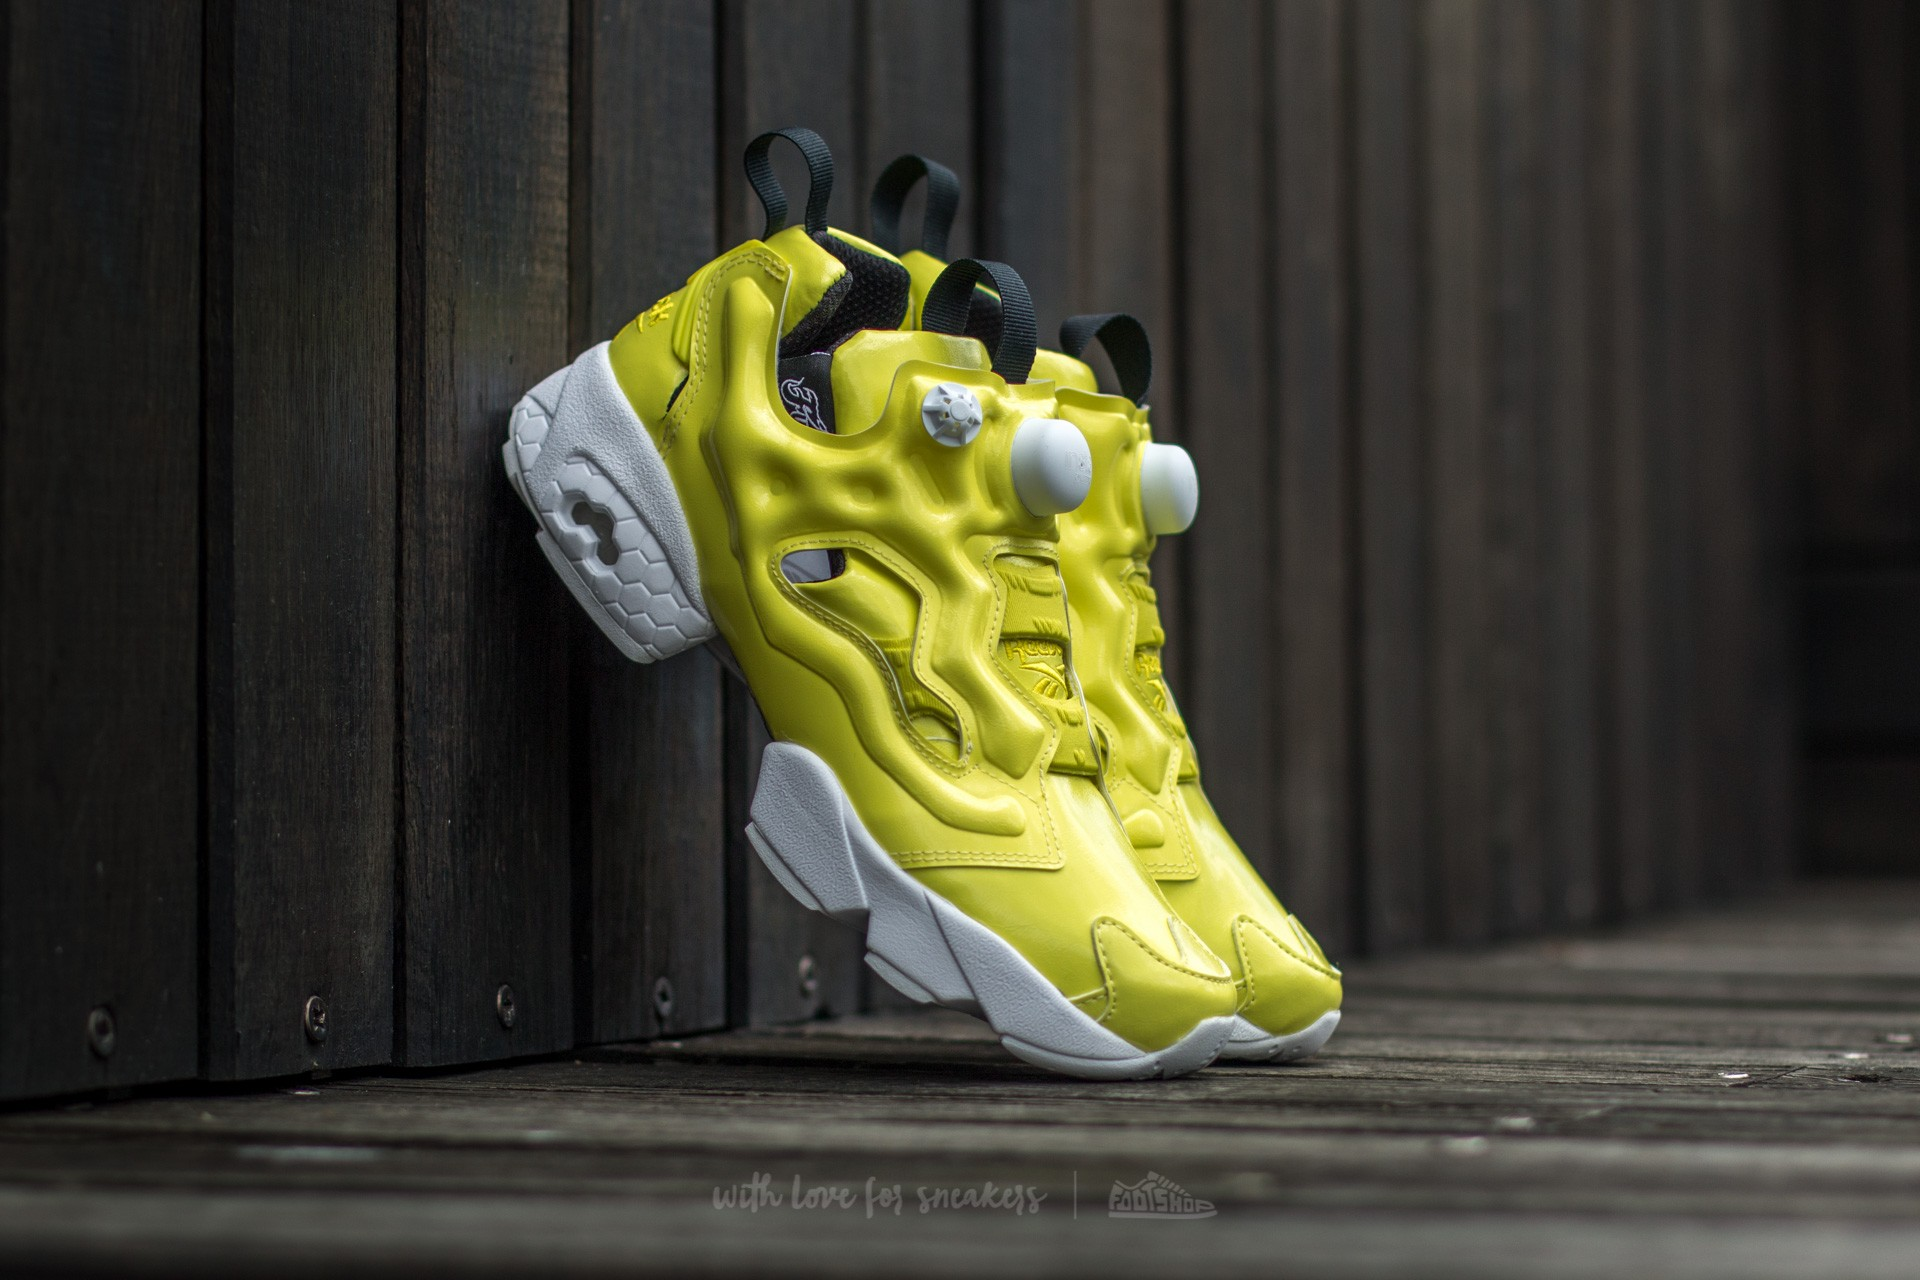 d83bfb780ea Reebok Instapump Fury OB Hero Yellow  White  Black